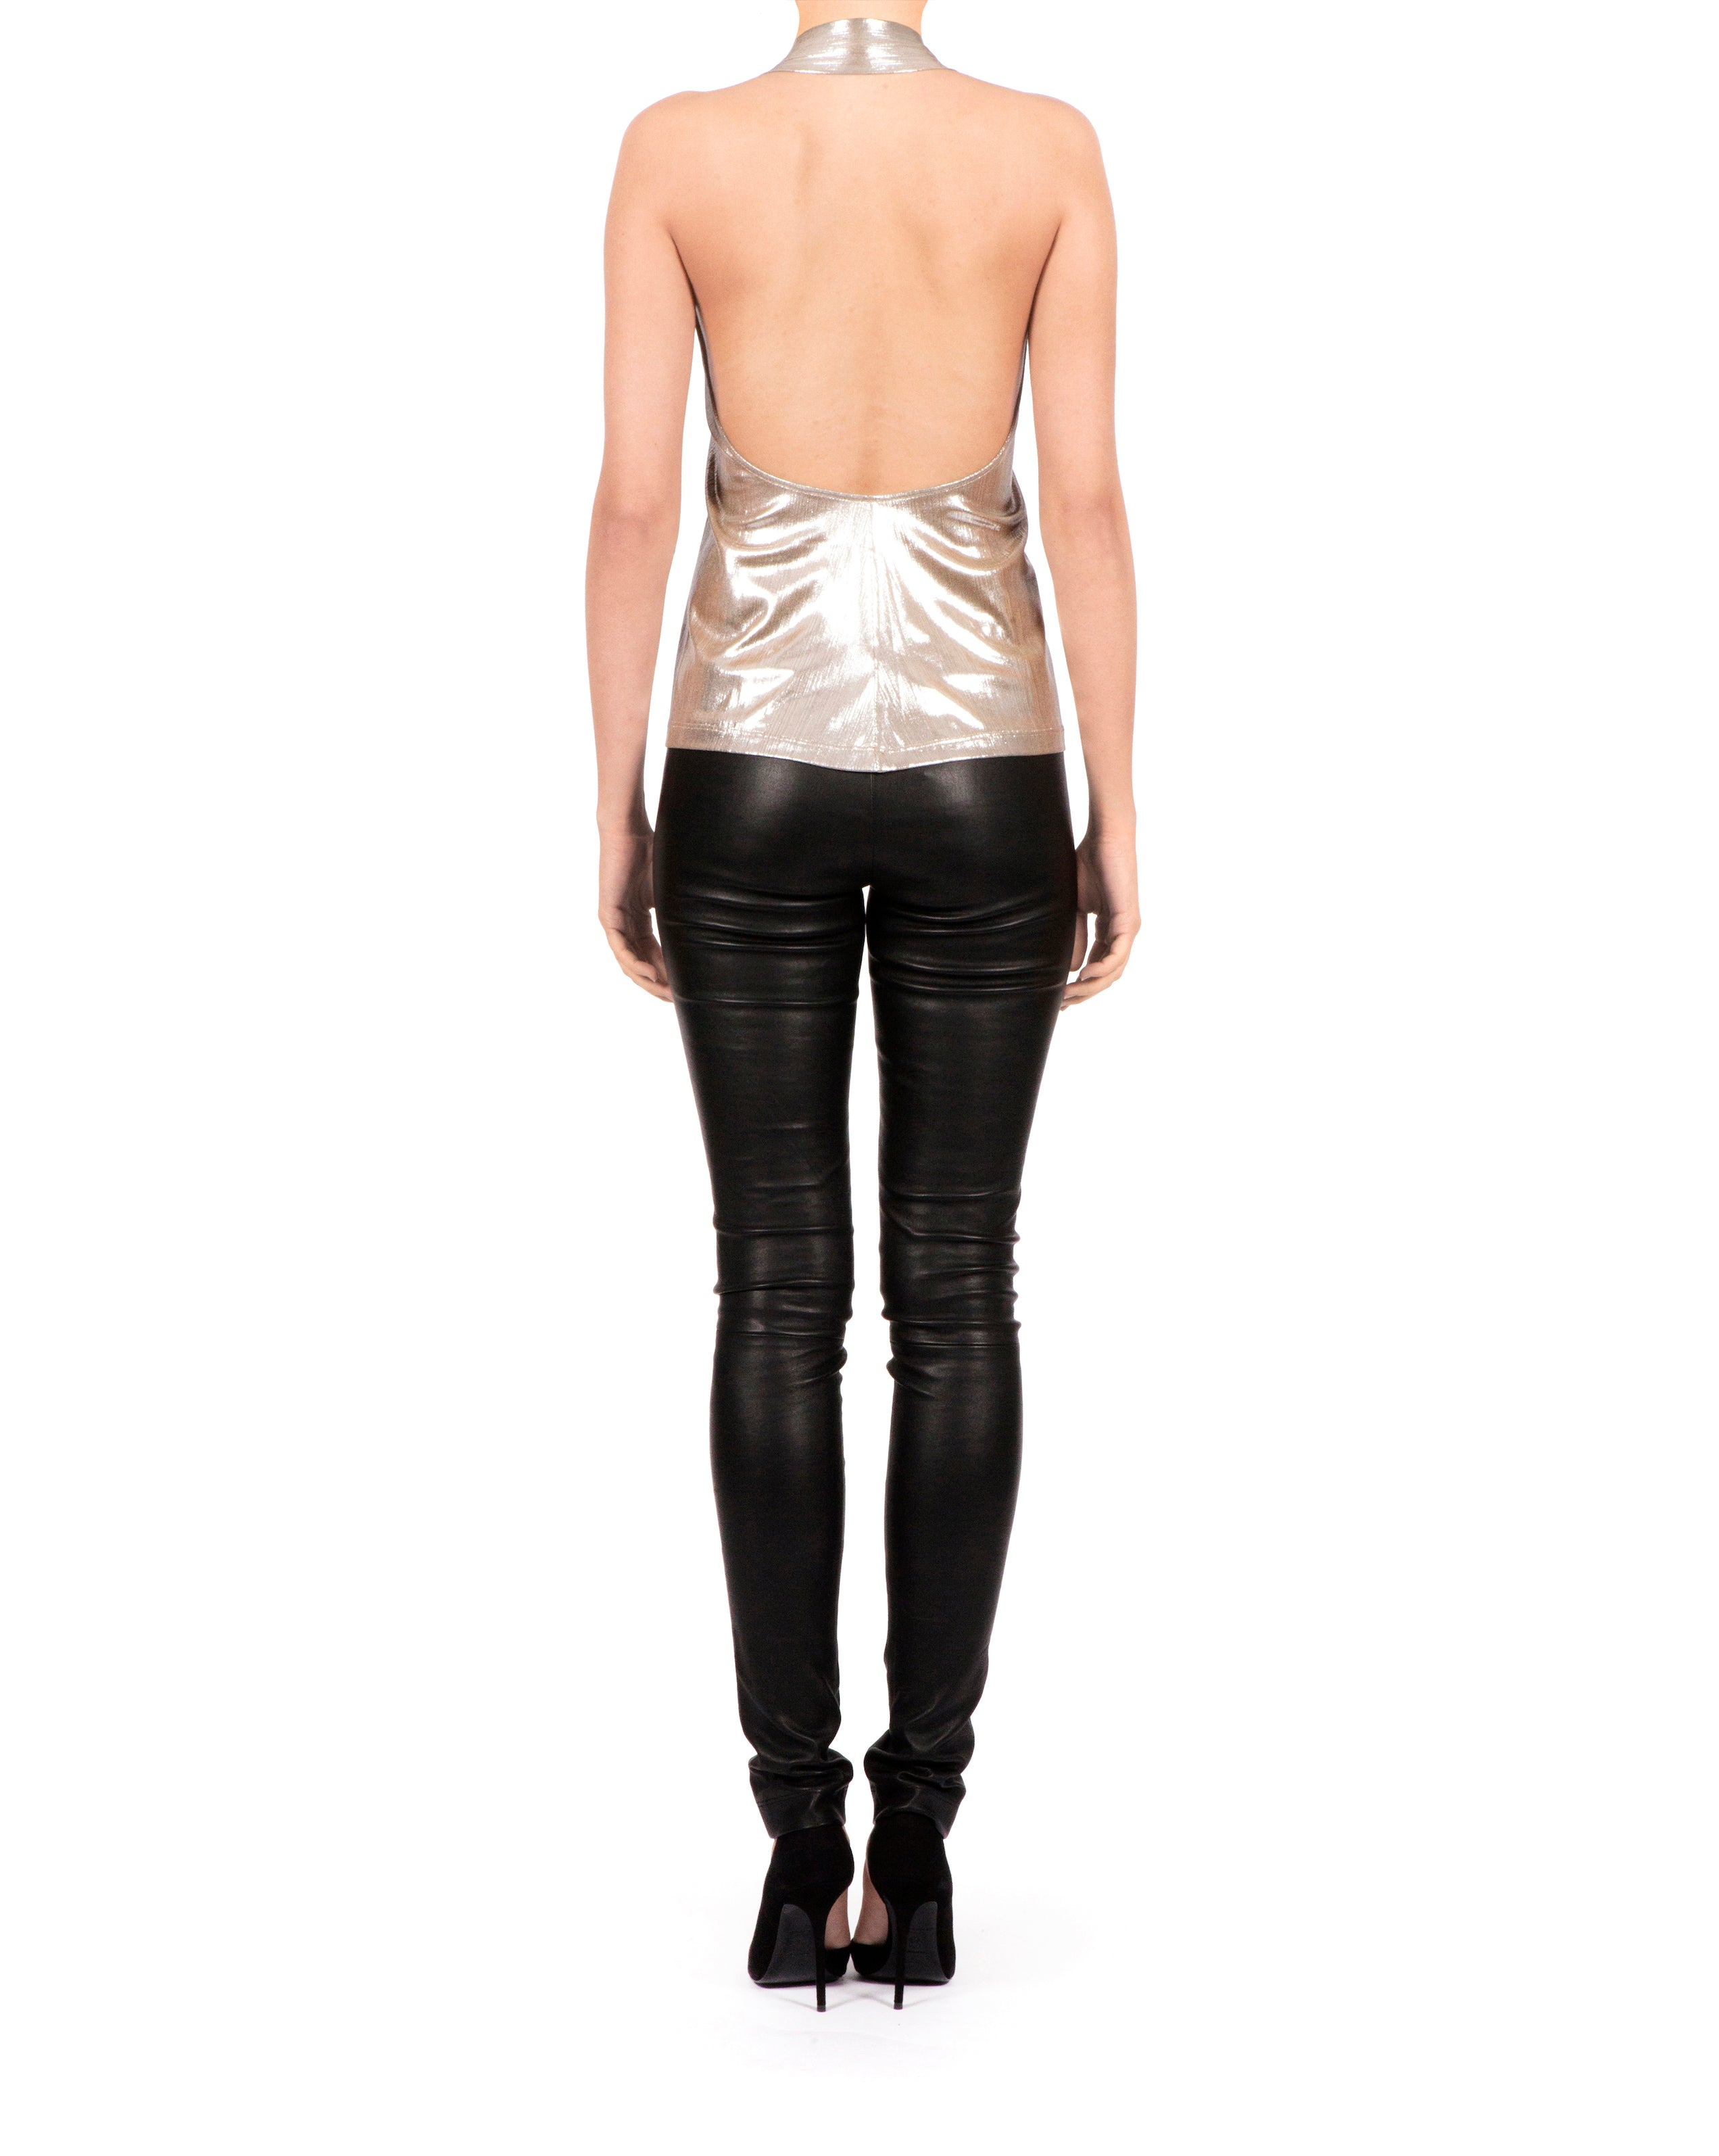 Sisso Top - Silver